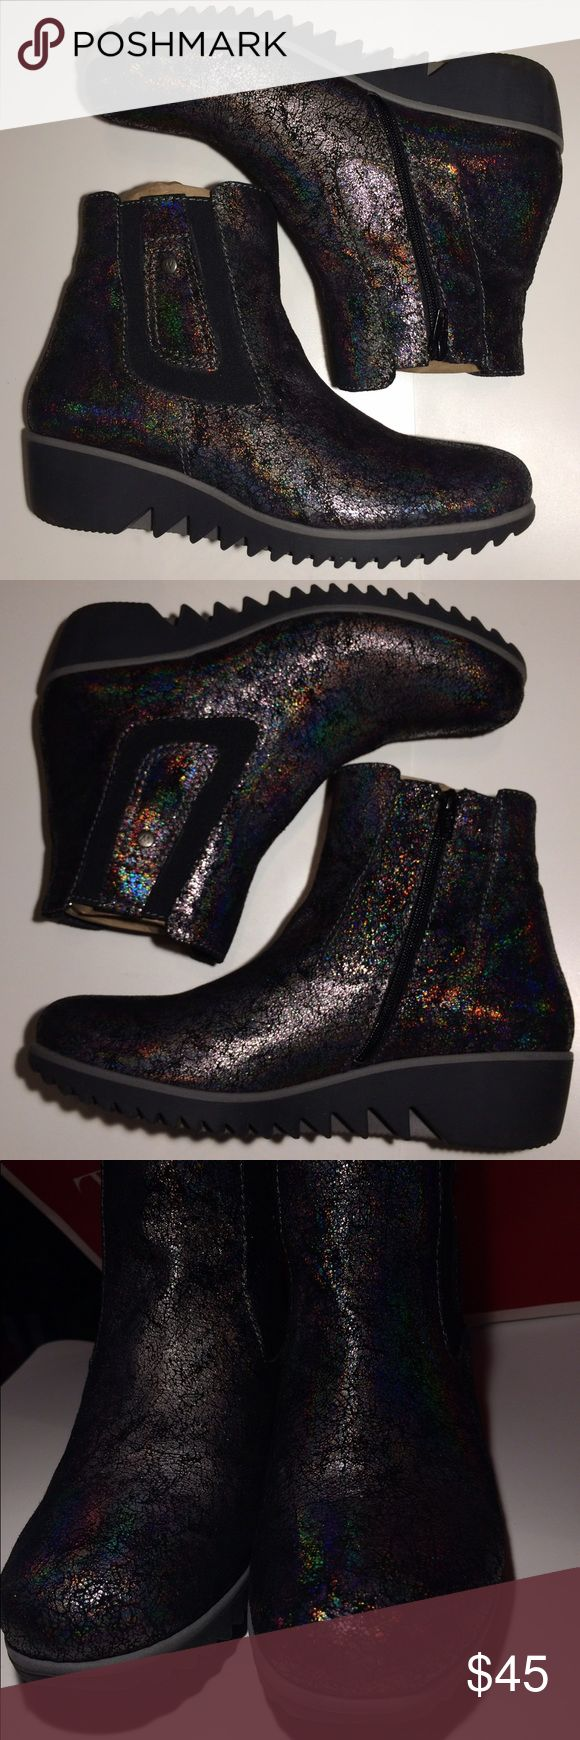 Black Silver Prism Heeled Walking Boots 🆓B2G1🆓 Silver Black Prism Heeled Walking Boots. Made in Portugal.             EUC - only worn once by my sister and then passed on to me. They are not my style. Wolky Shoes Heeled Boots